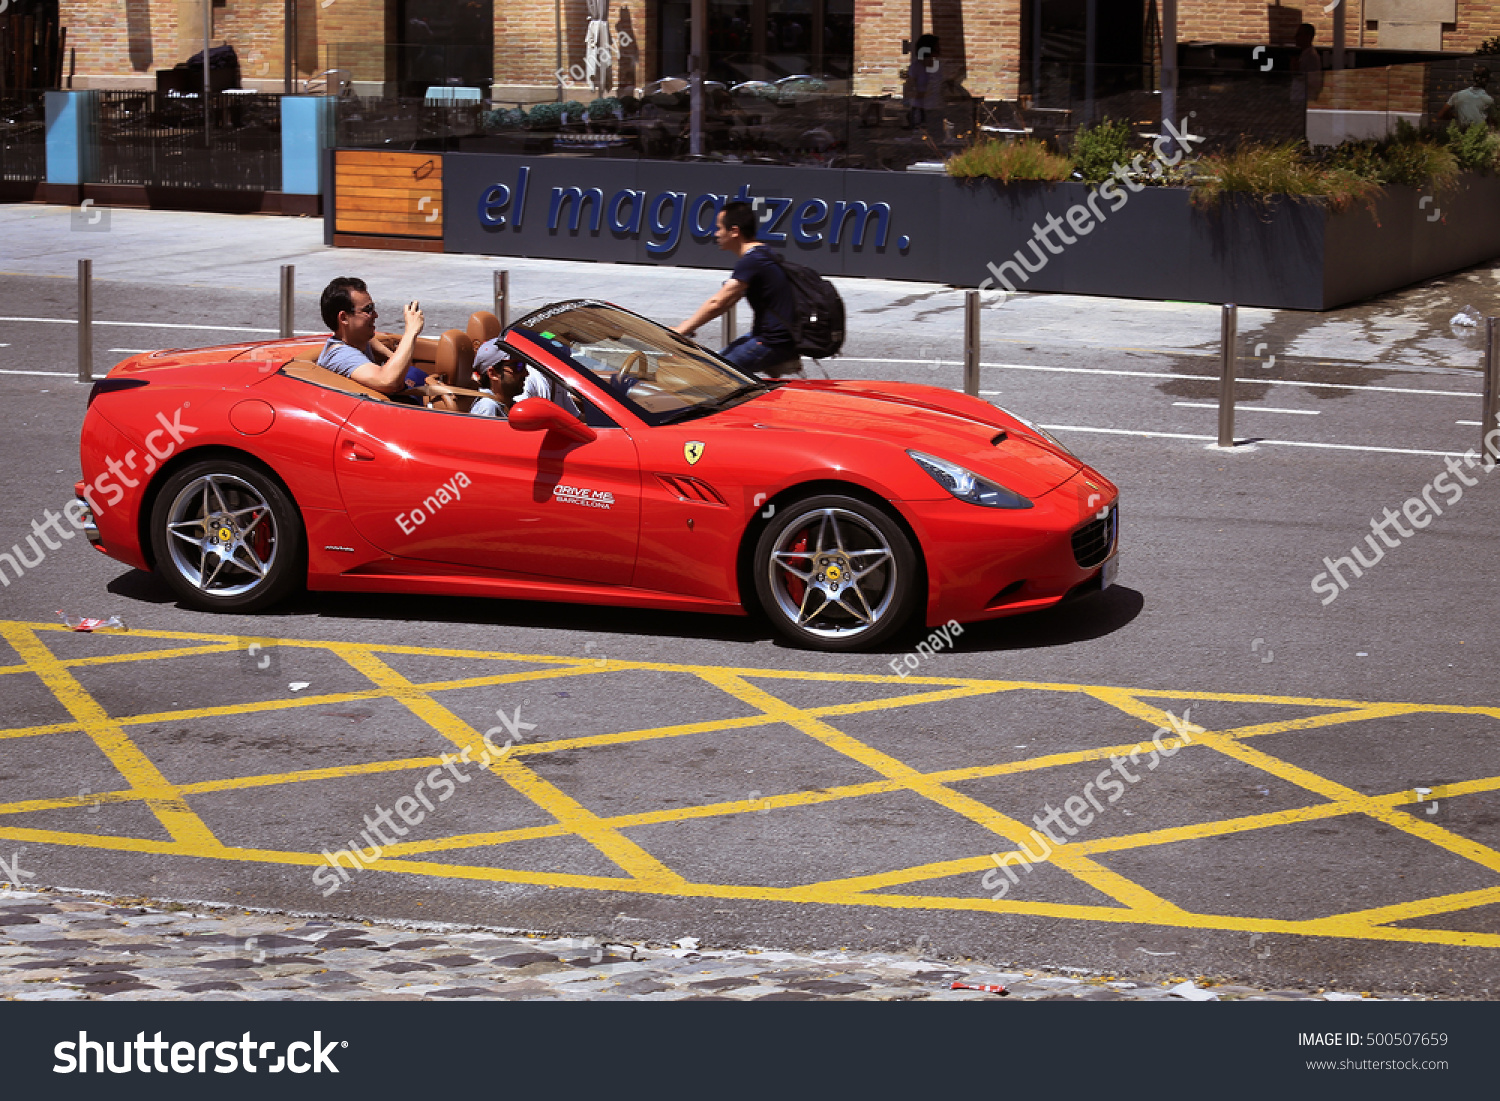 Royalty free barcelona spain june 25 2016 500507659 stock barcelona spain june 25 2016 tourists rent supercar ferrari in barcelona expensive cars and other material symbols are visible everywhere biocorpaavc